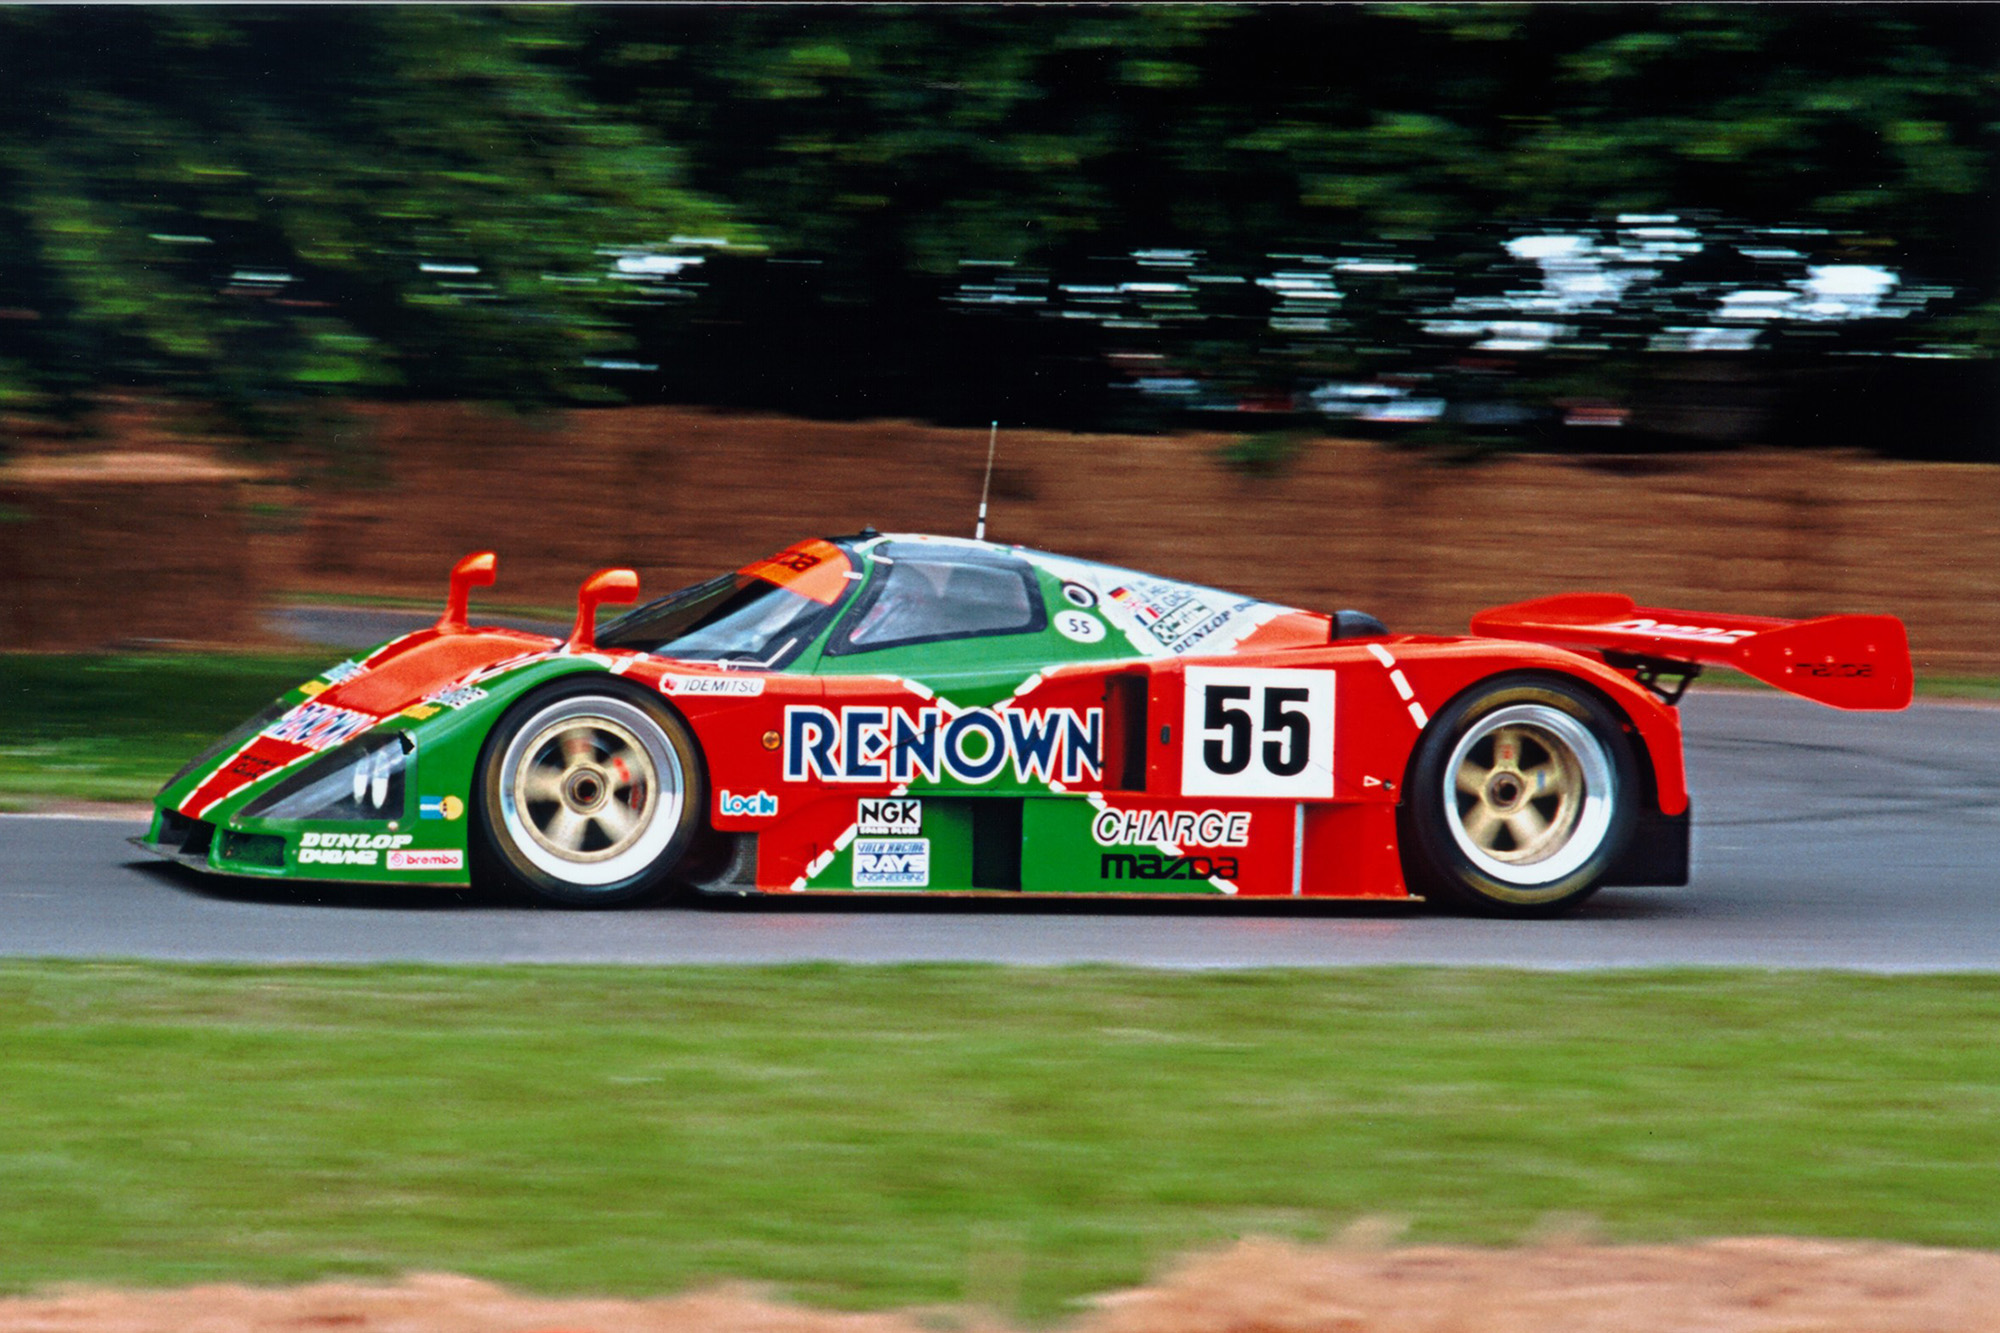 mazda 787b photos photogallery with 11 pics. Black Bedroom Furniture Sets. Home Design Ideas